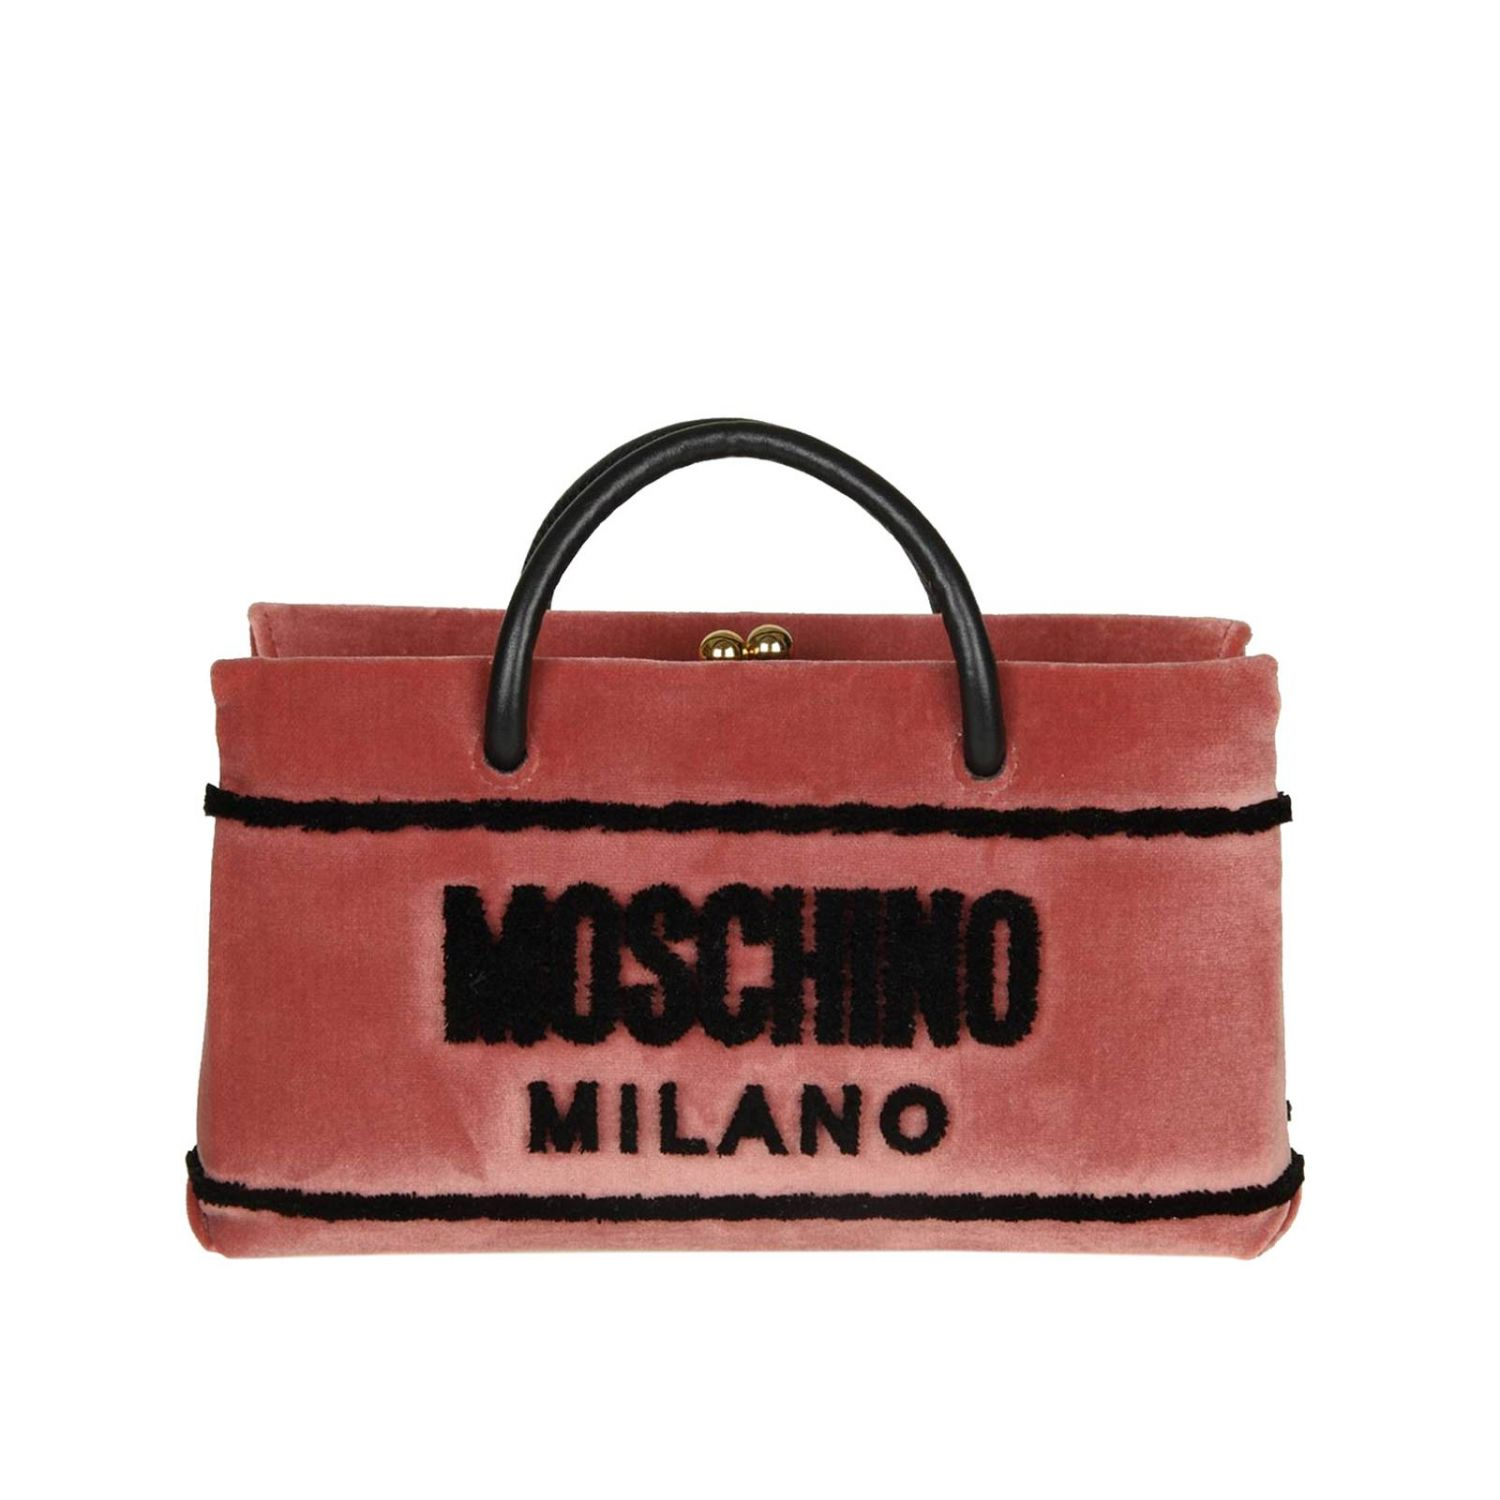 Handbag Handbag Women Moschino Couture 8483406